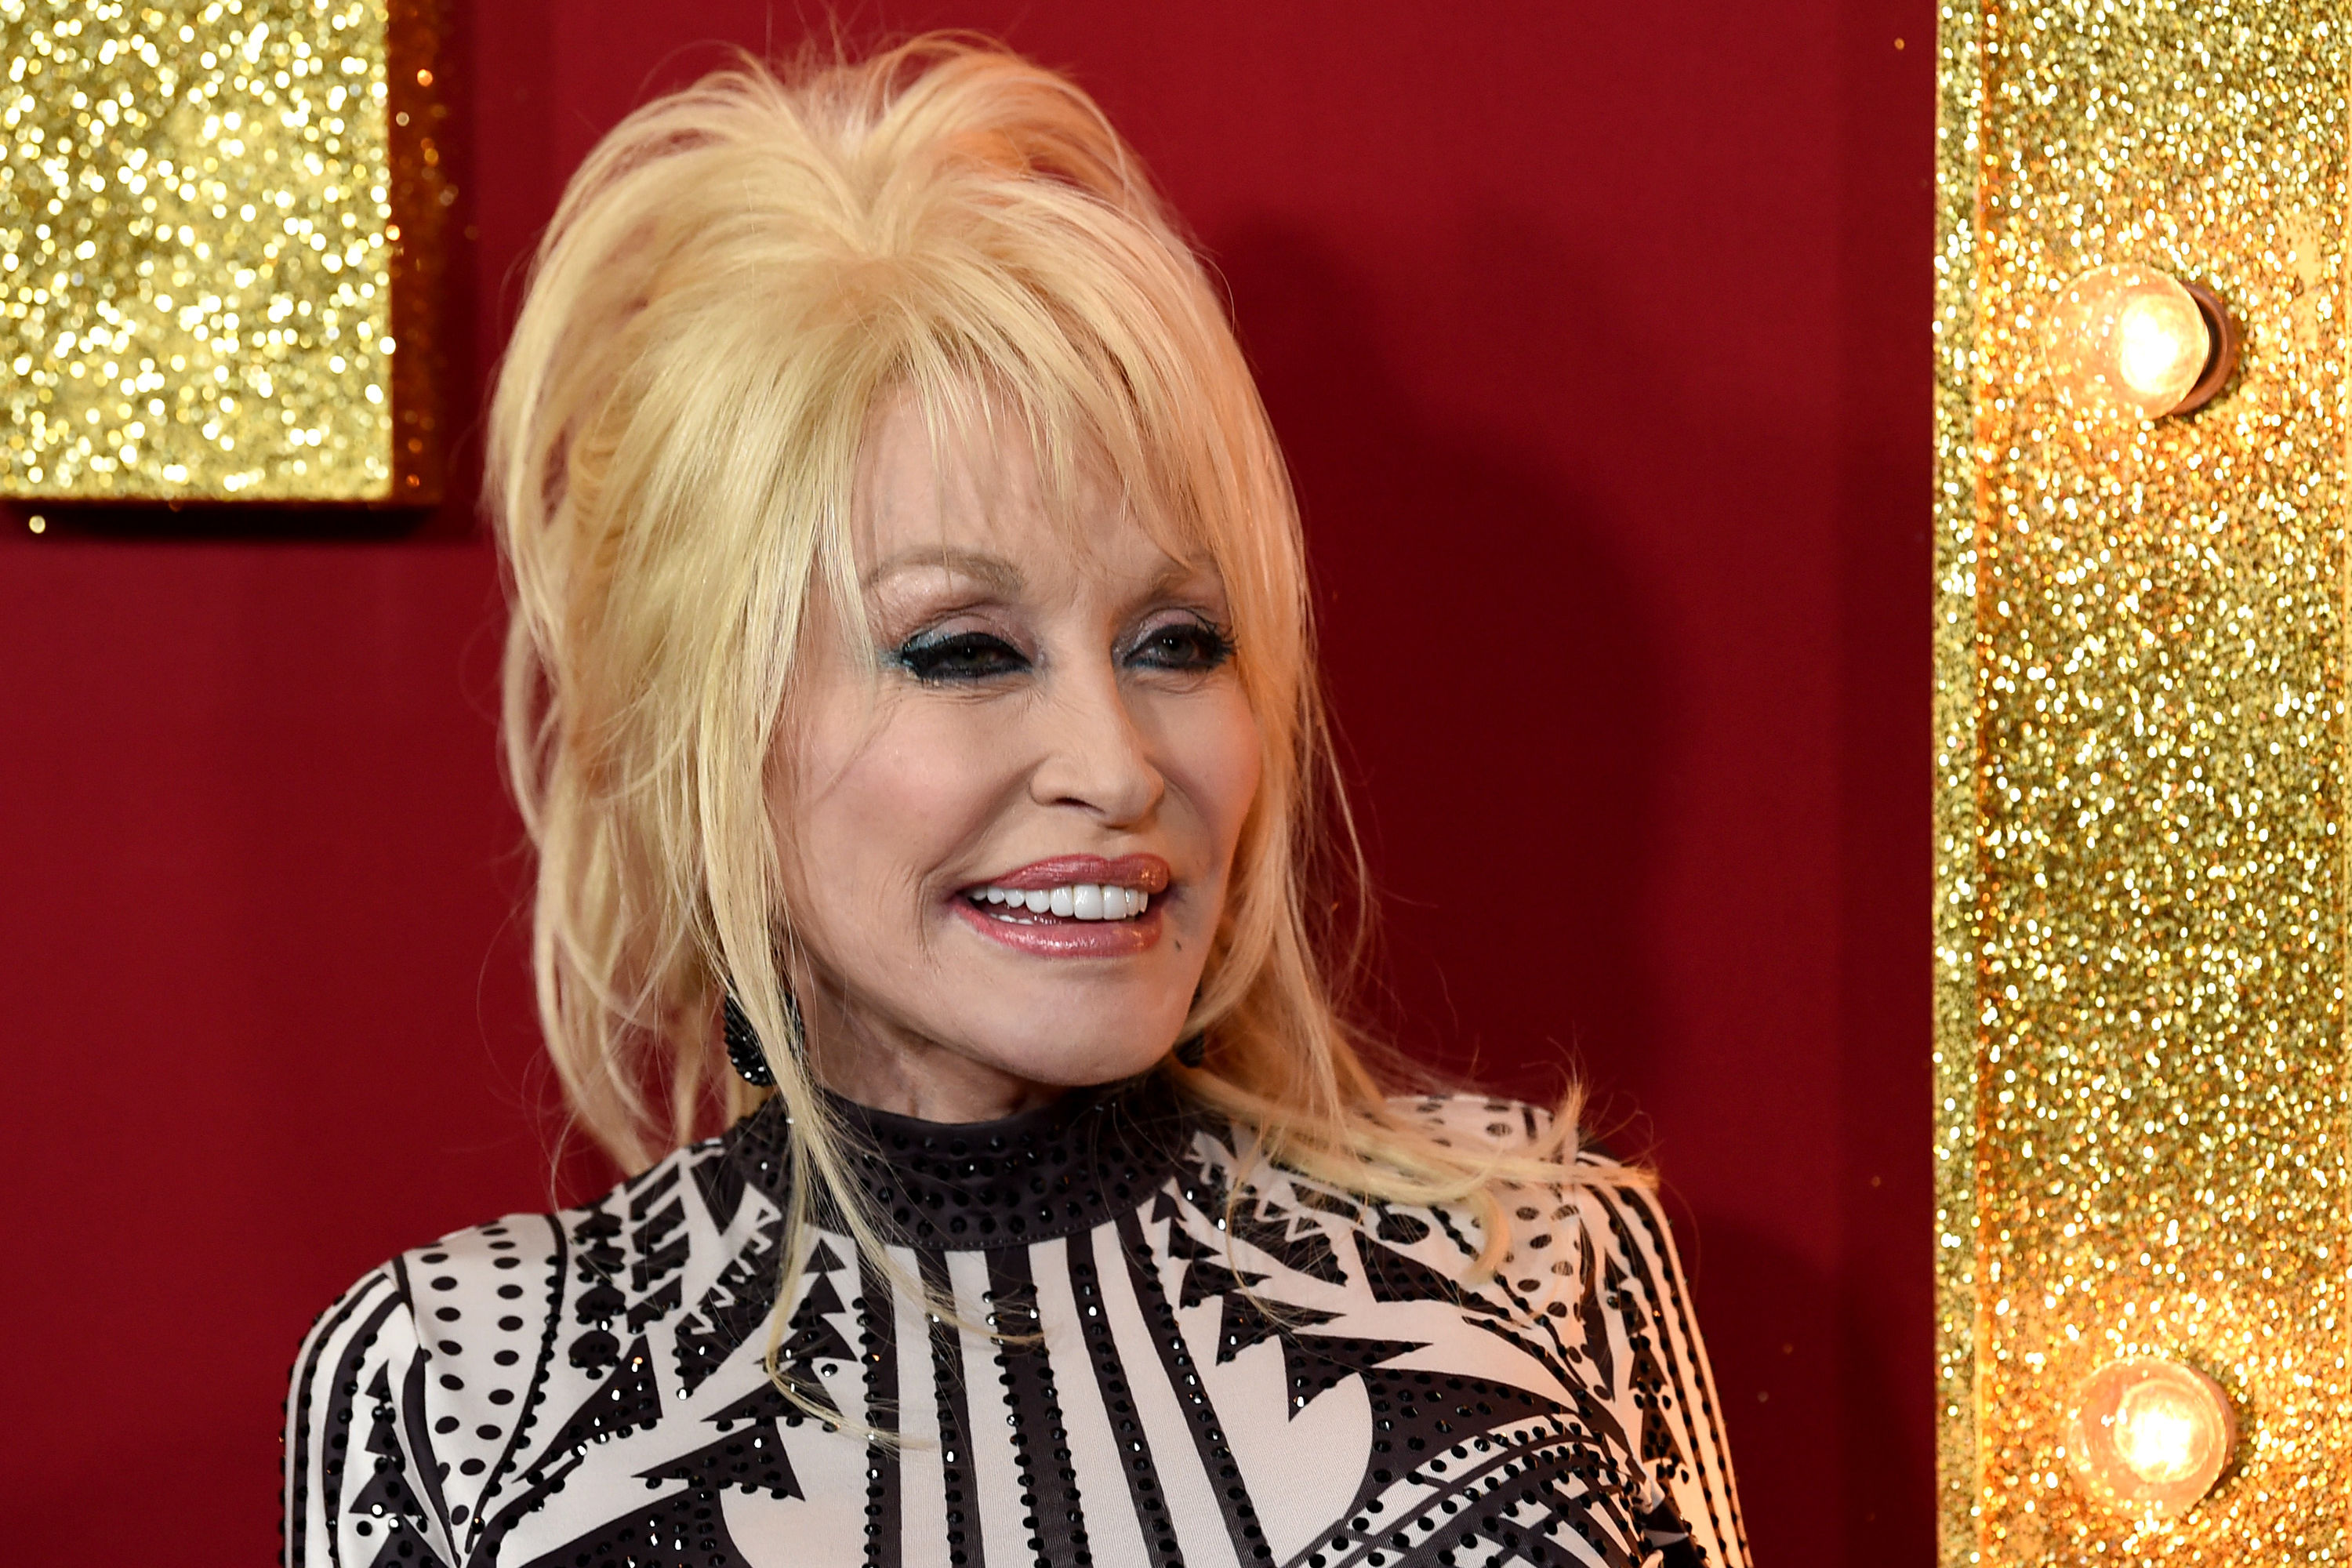 The Real Reason Dolly Parton Has Tattoos